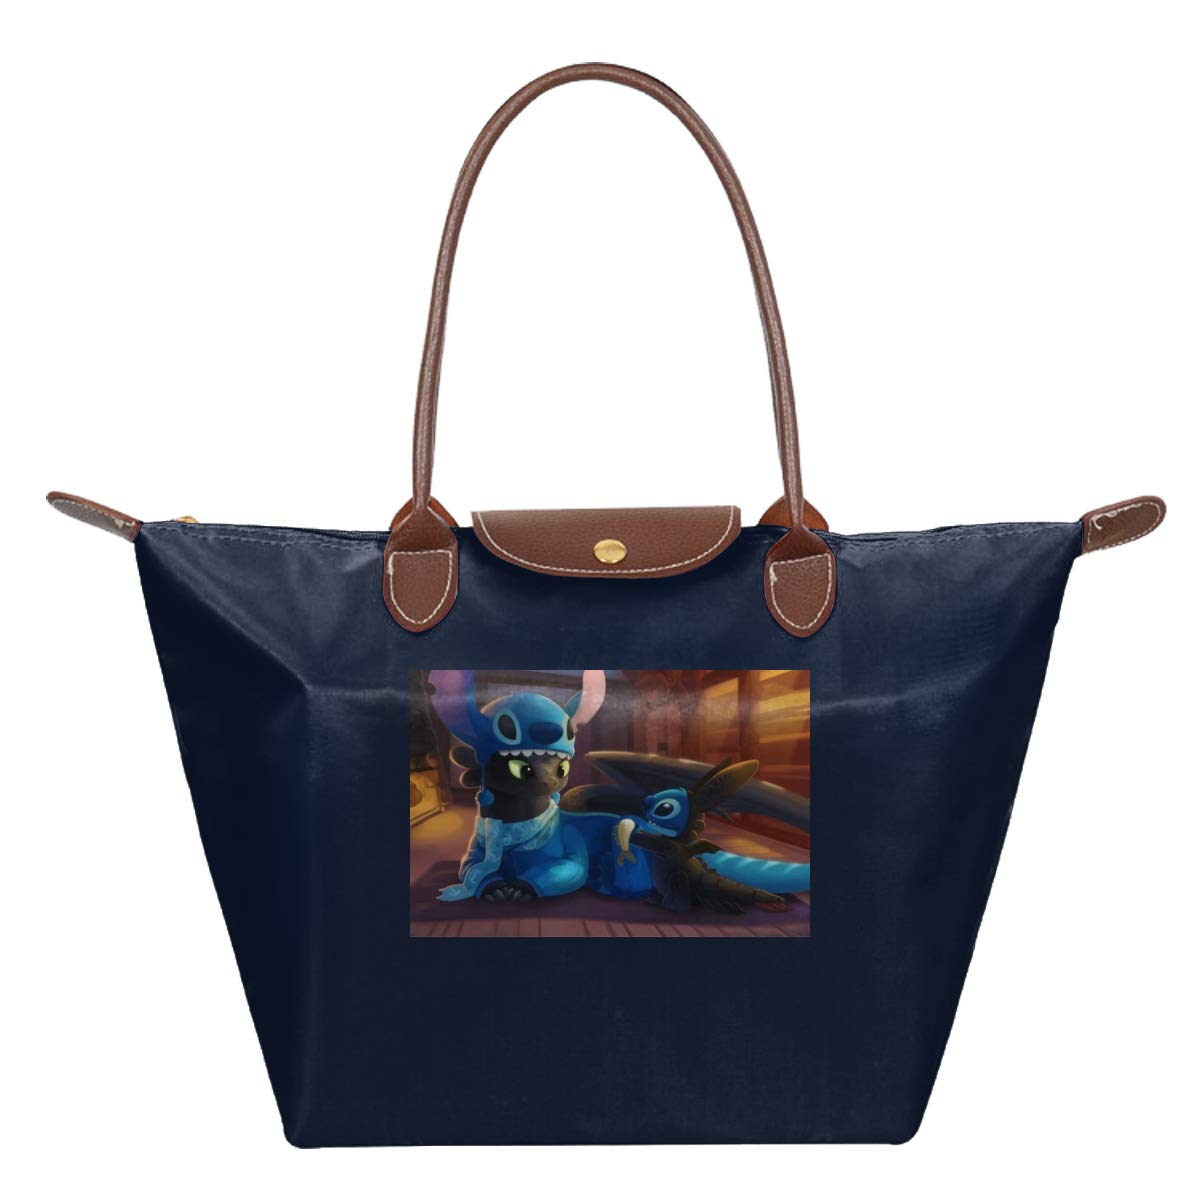 Toothless Dragon And Stit-ch Waterproof Leather Folded Messenger Nylon Bag Travel Tote Hopping Folding School Handbags